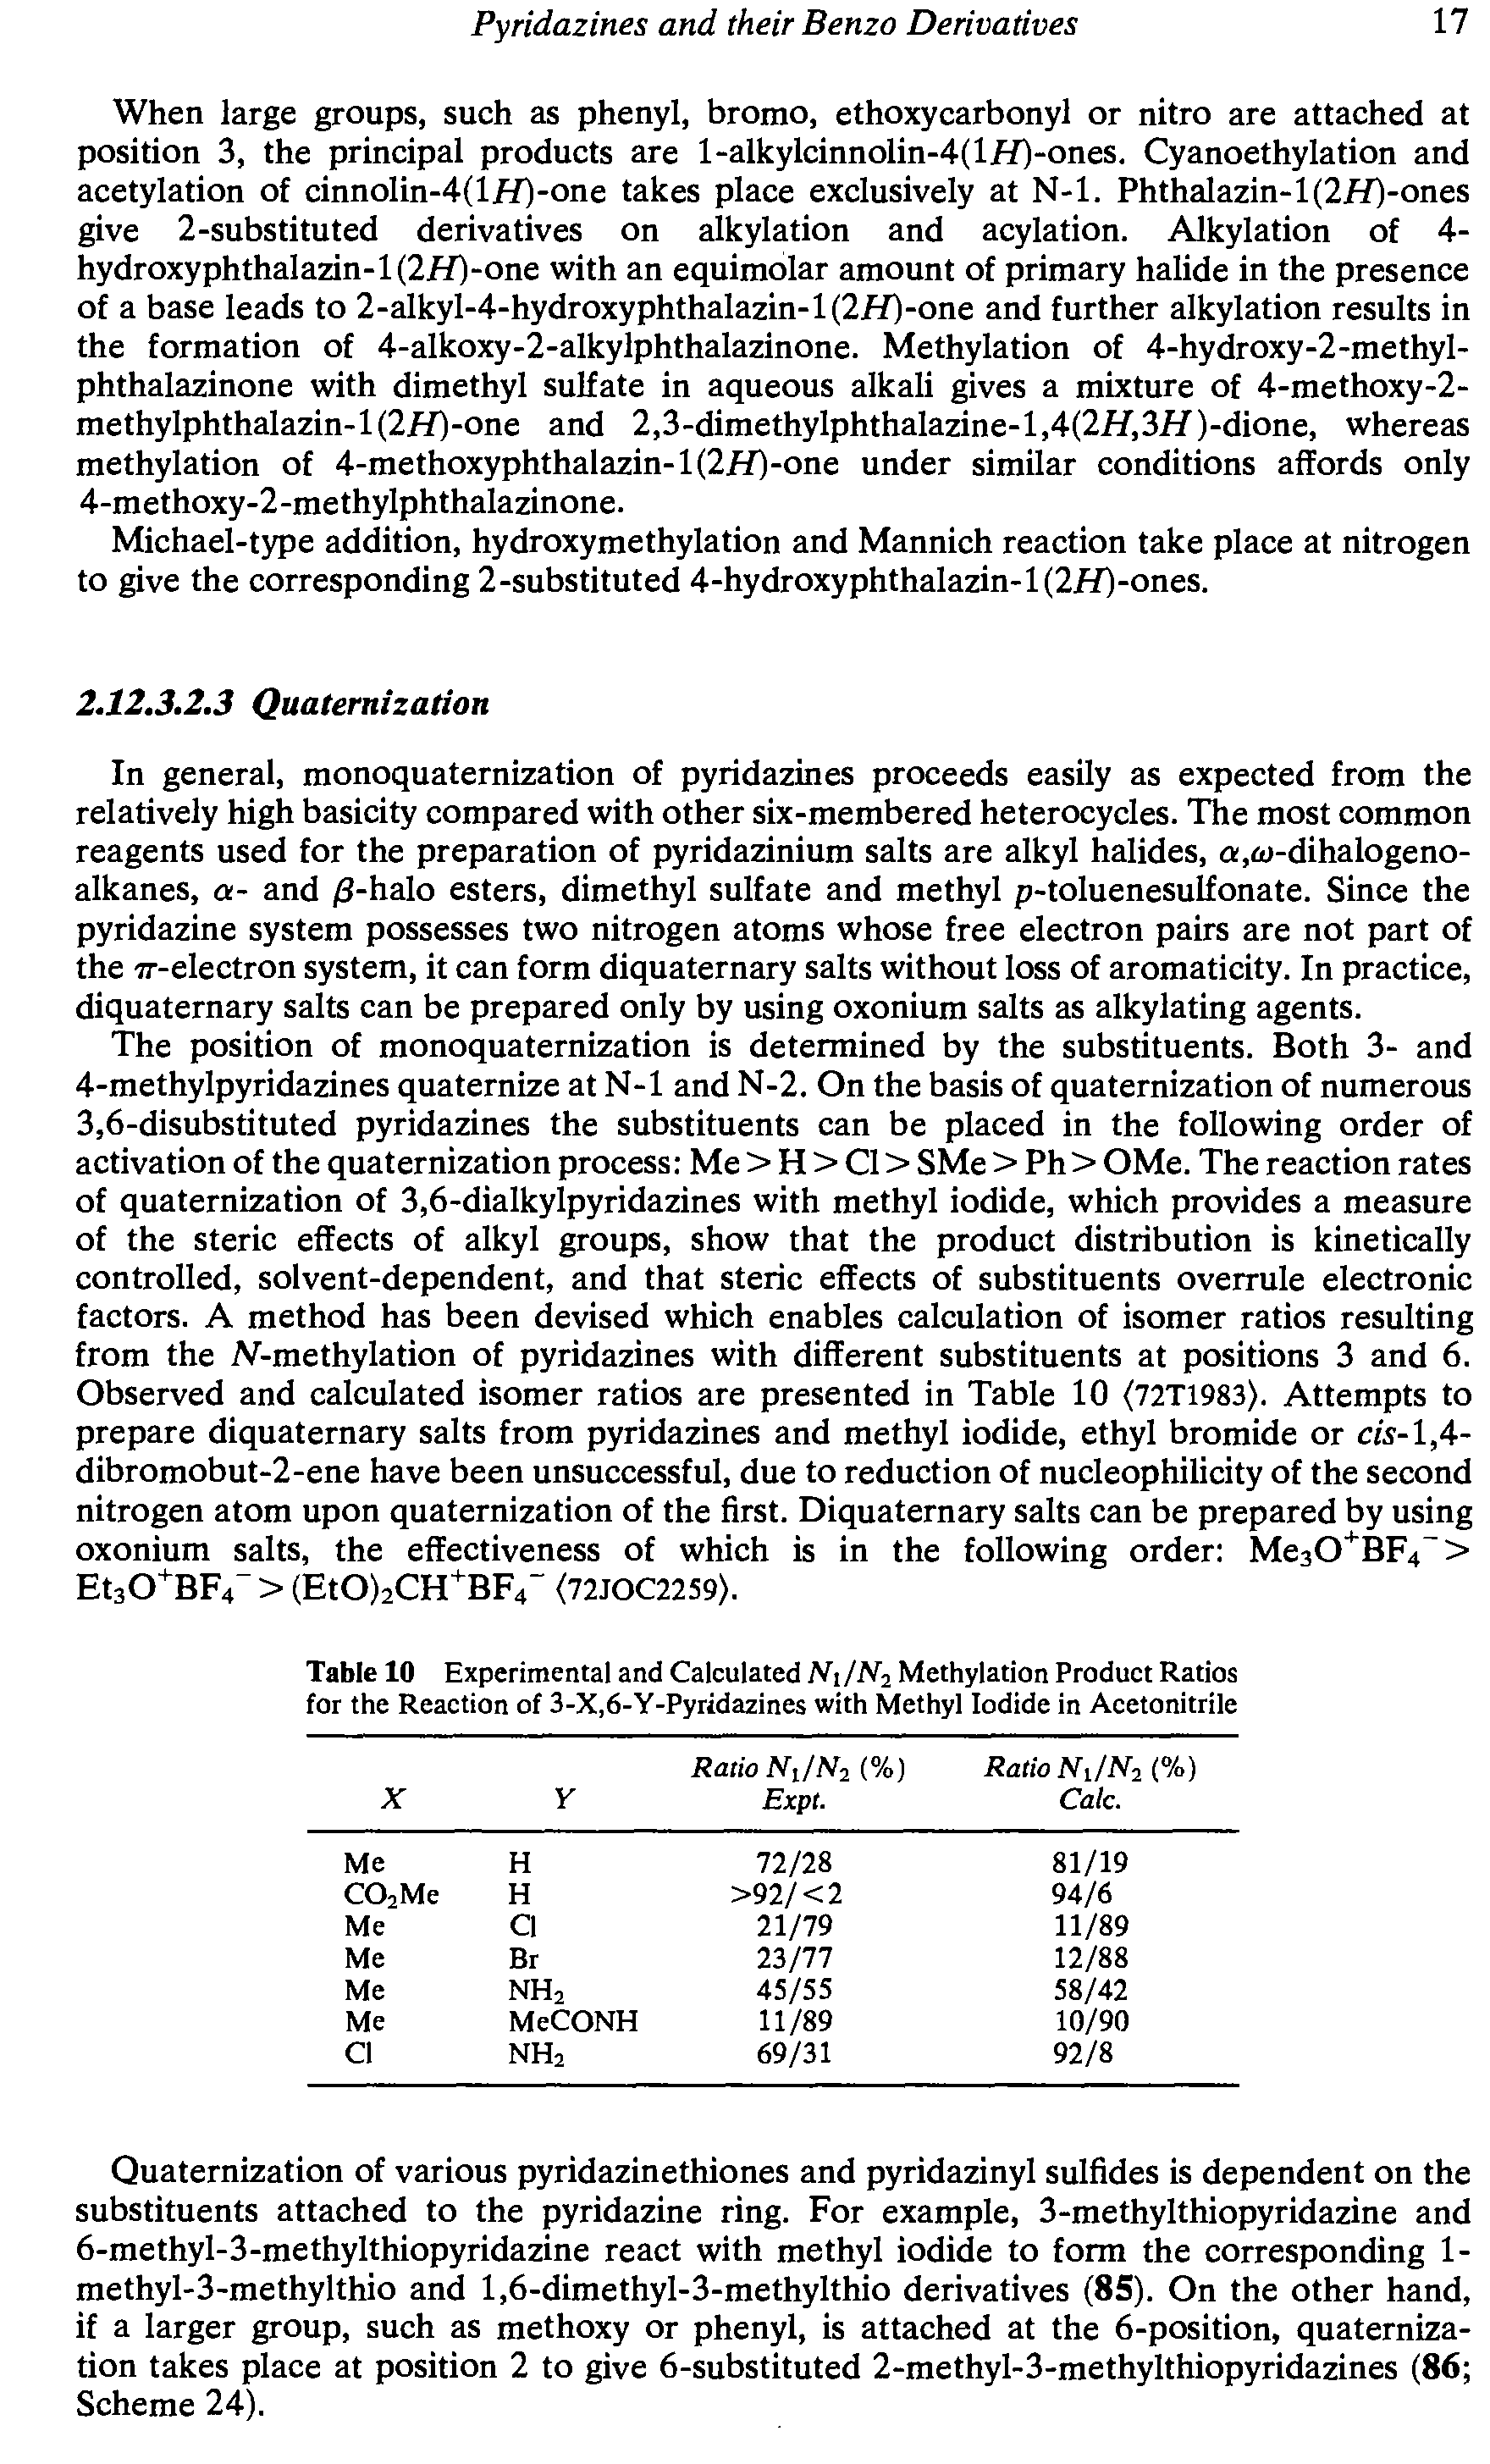 "Table 10 Experimental and Calculated Ni/N Methylation Product Ratios for the Reaction of 3-X,6-Y-Pyridazines <a href=""/info/with_methyl_iodide"">with Methyl Iodide</a> in Acetonitrile"